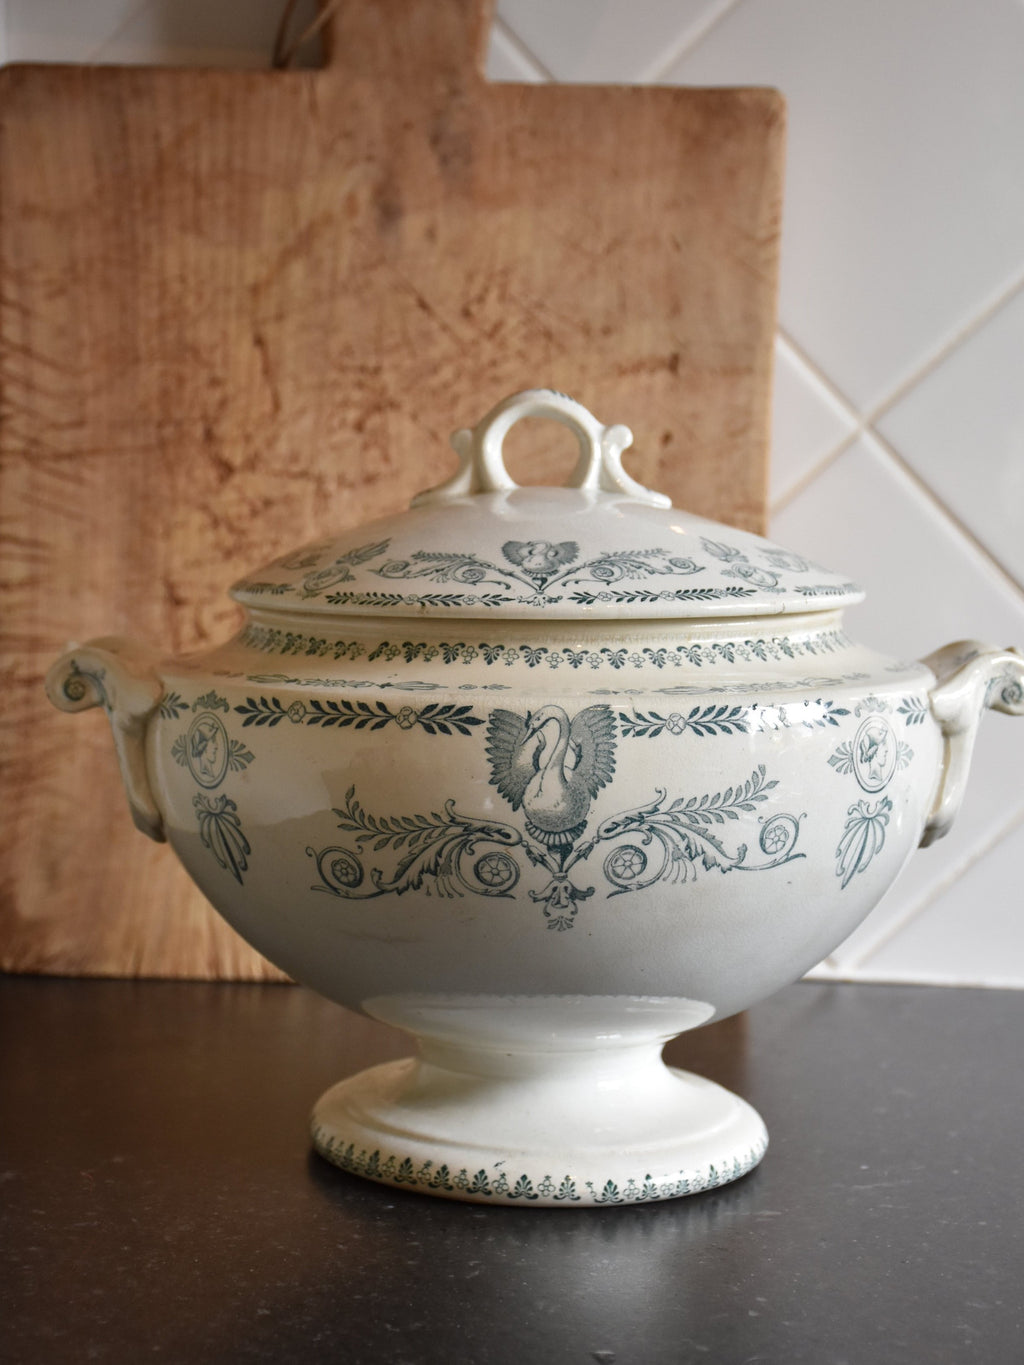 Ironstone soup tureen with blue pattern - 1900's